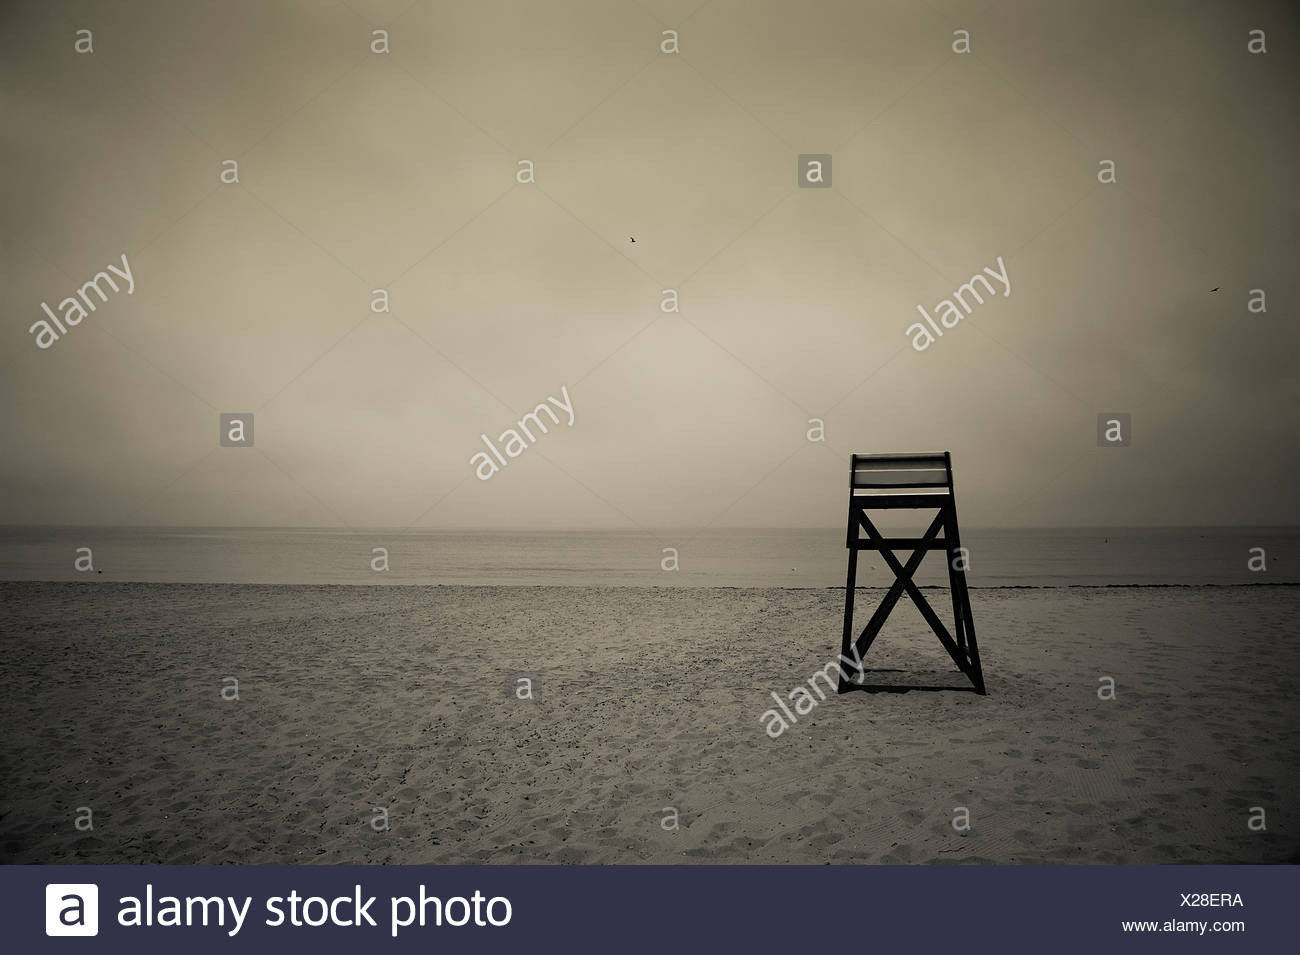 Moody lifeguard stand on beach, Cape Cod, MA - Stock Image